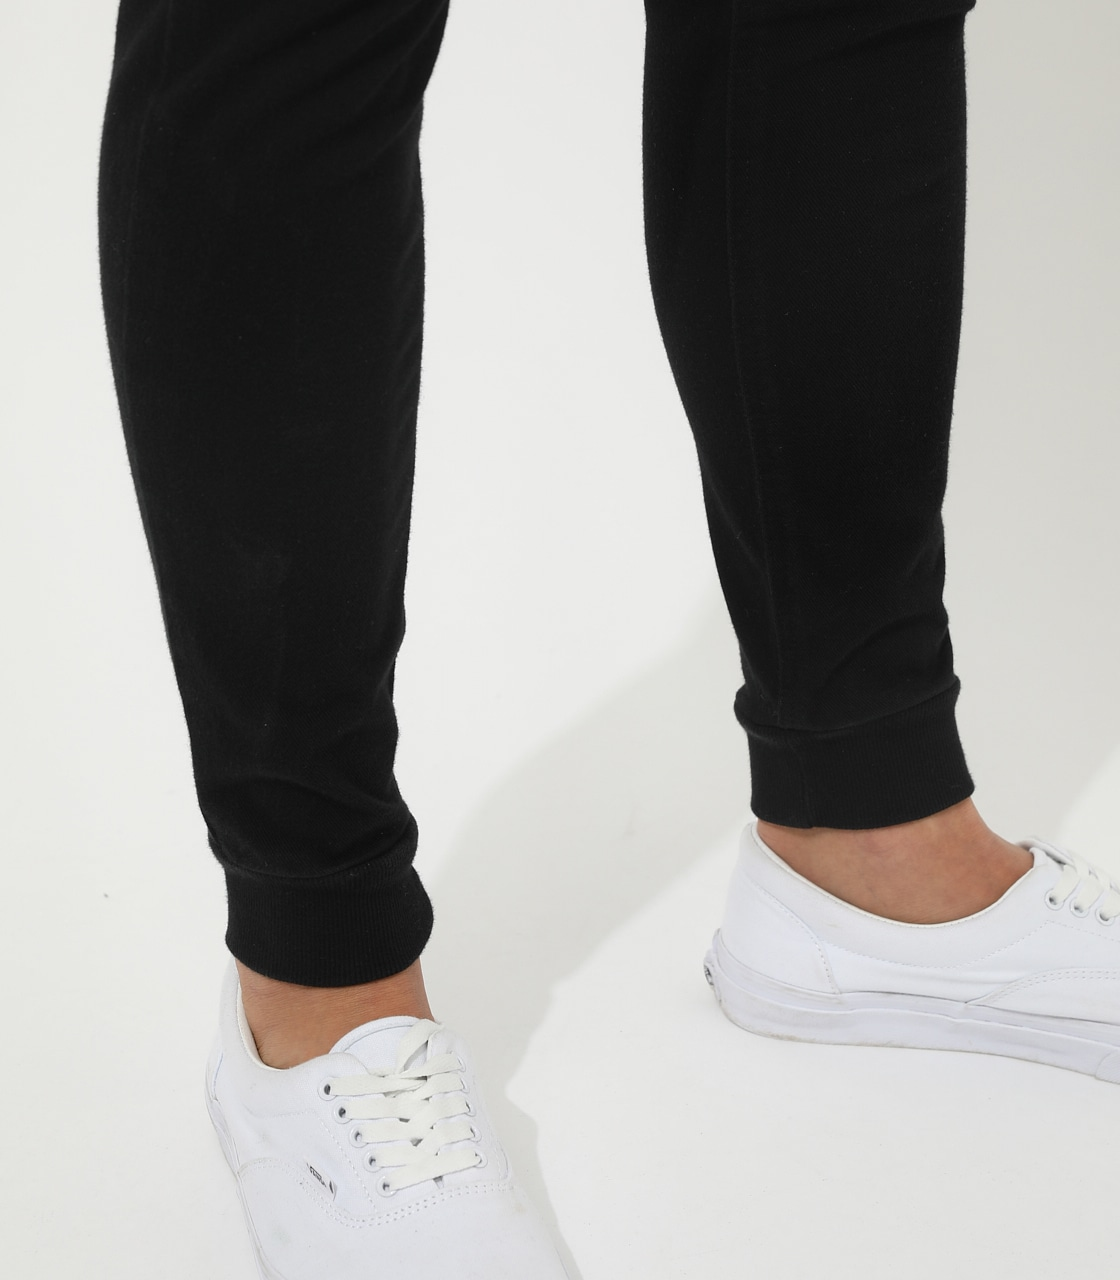 【AZUL BY MOUSSY】EASY ACTION SLIM JOGGER 詳細画像 BLK 9